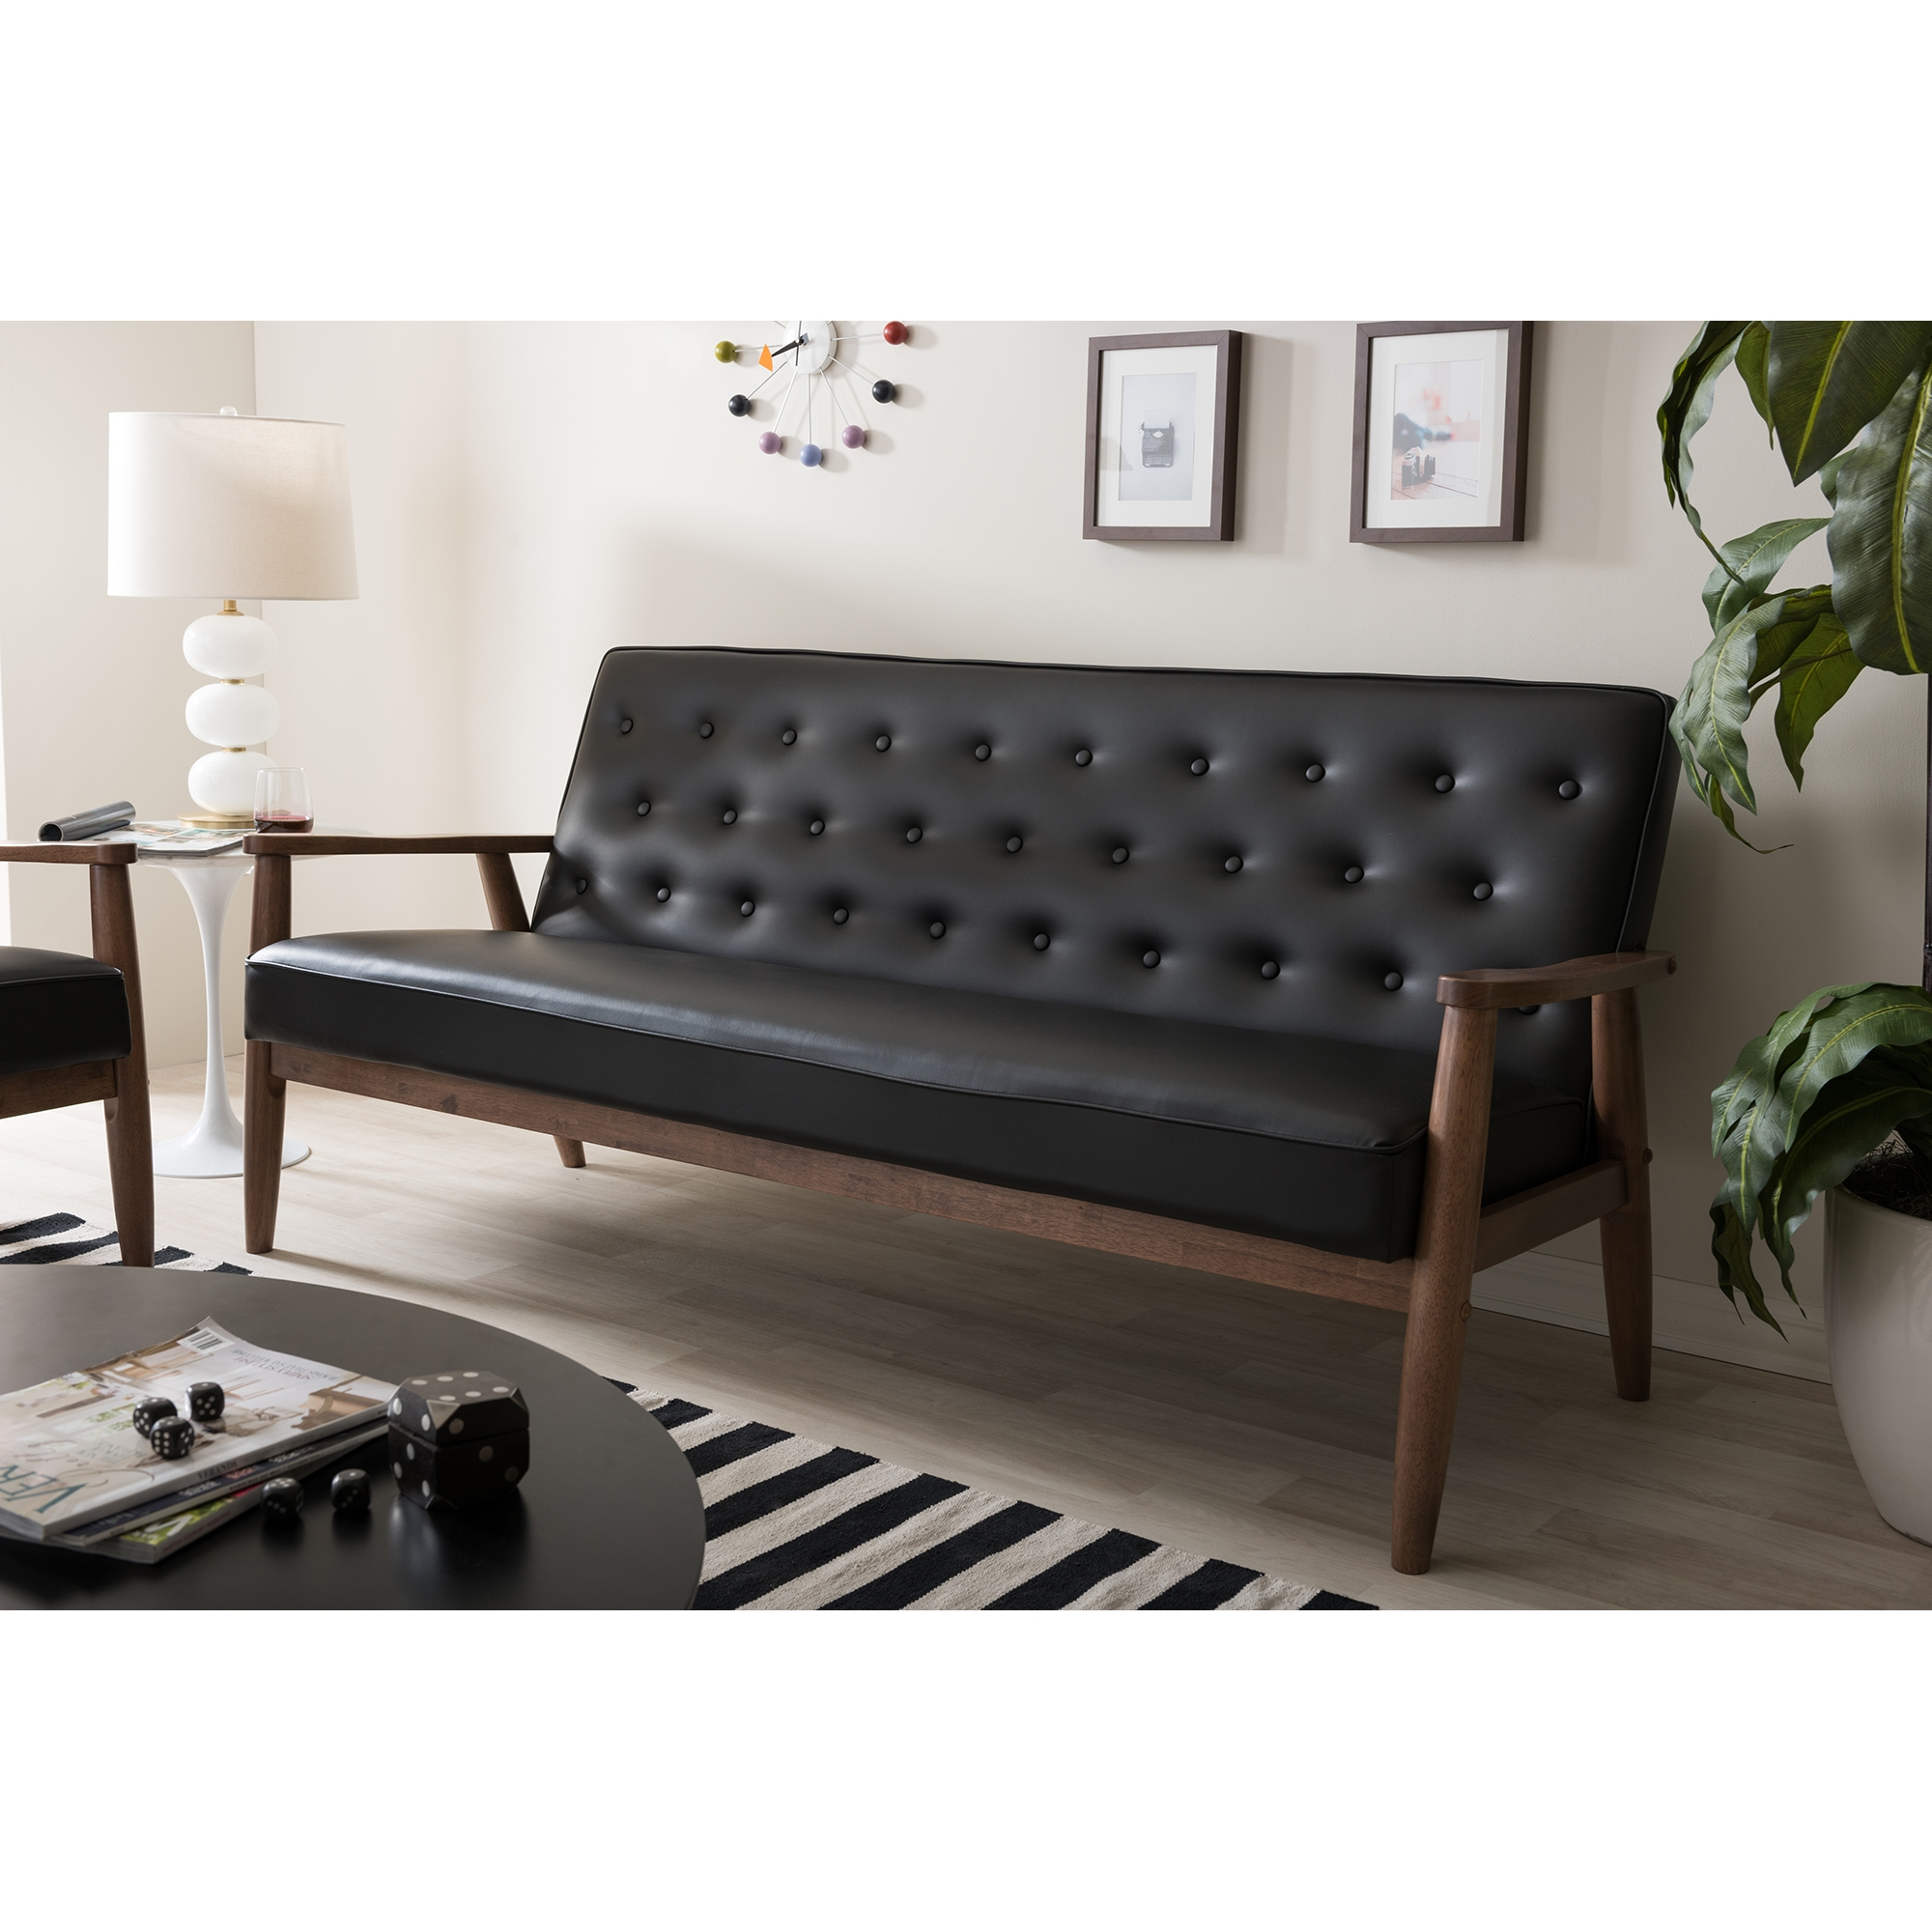 ... Baxton Studio Sorrento Mid Century Retro Modern Black Faux Leather  Upholstered Wooden 3 Seater